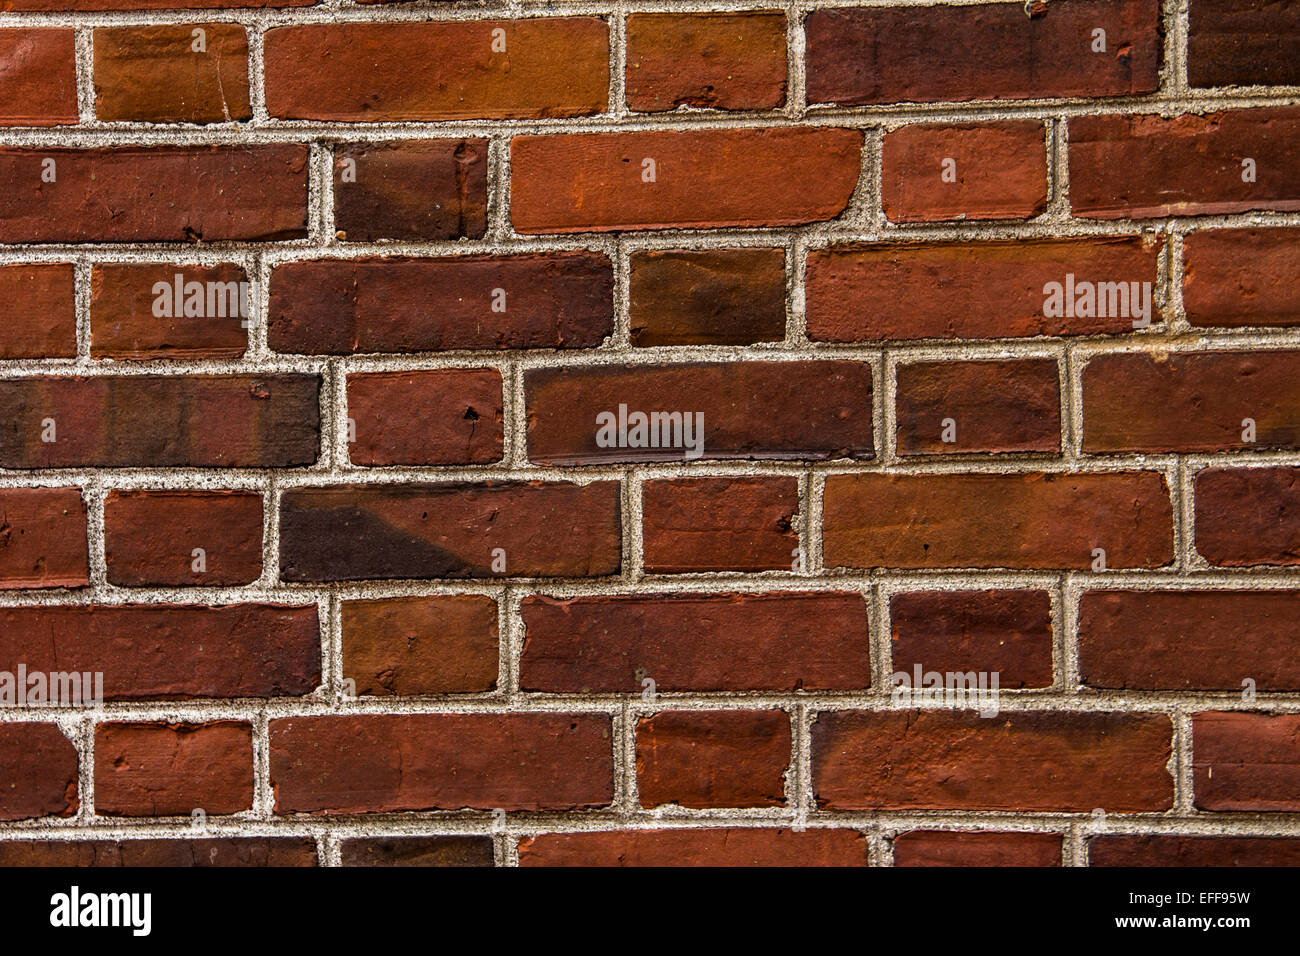 Red brick wall backgro und. - Stock Image